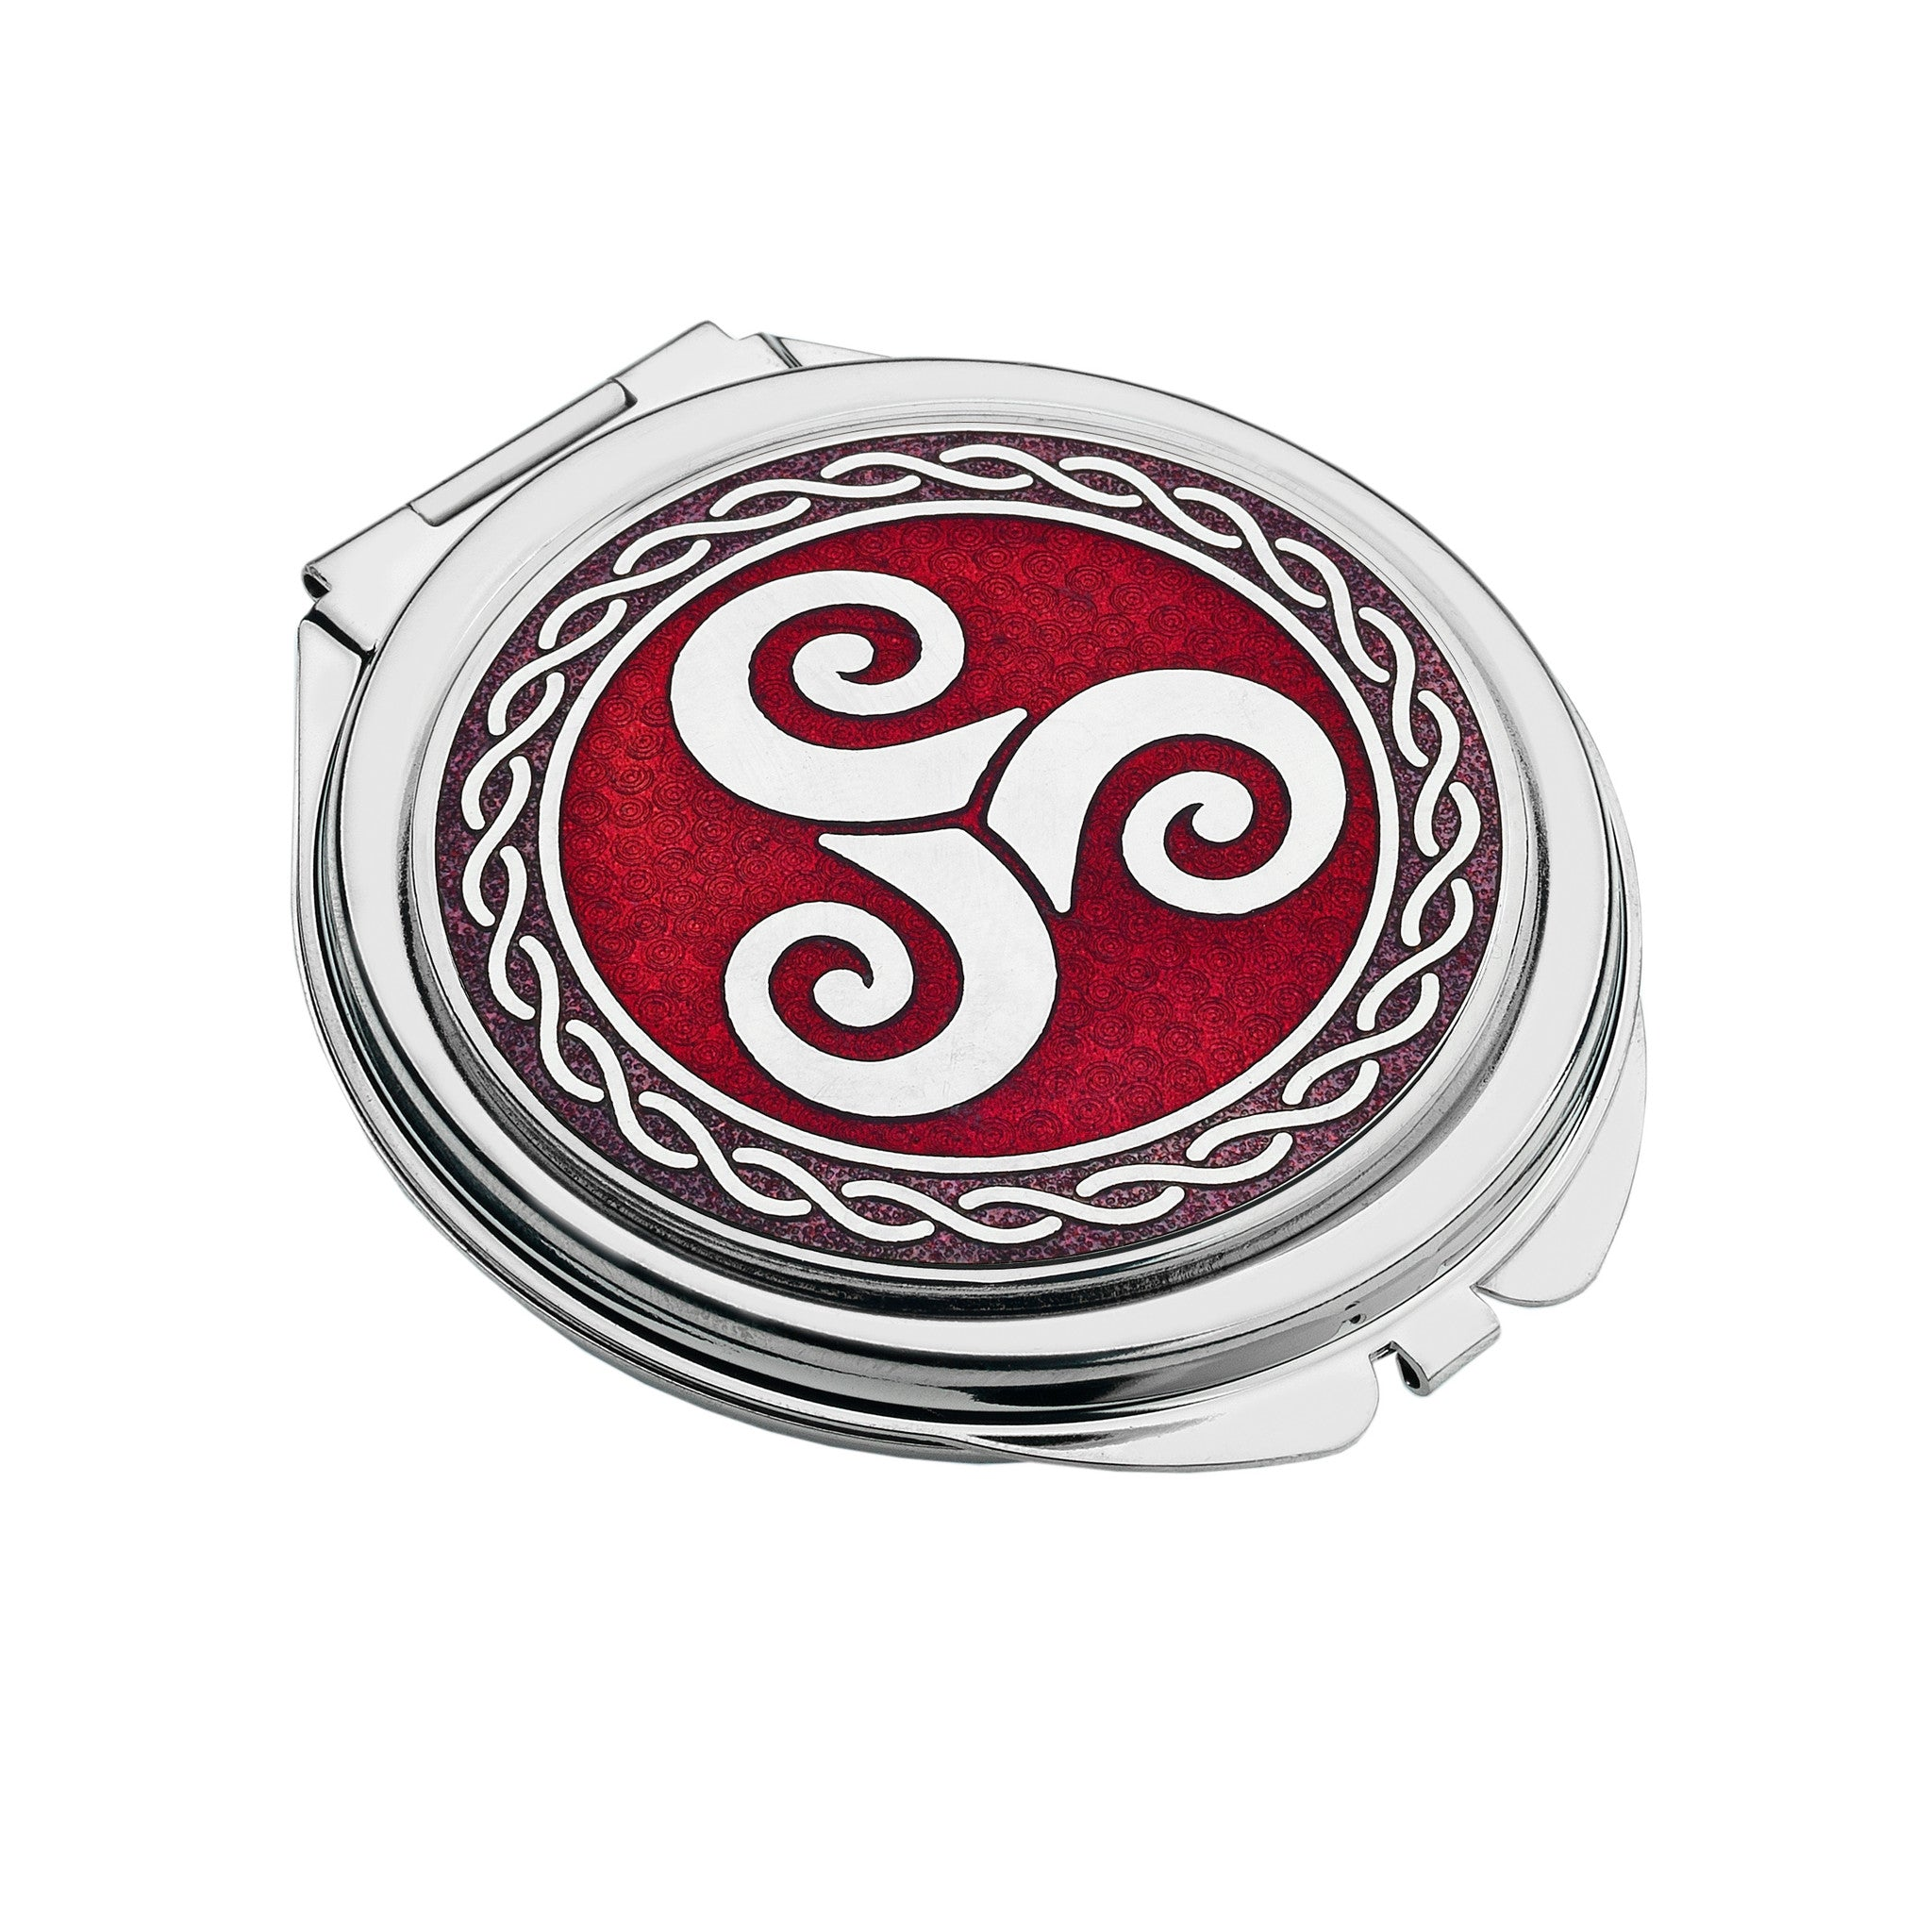 Triskele celtic knot compact mirror 8024 giftware wales triskele celtic knot compact mirror 8024 buycottarizona Images